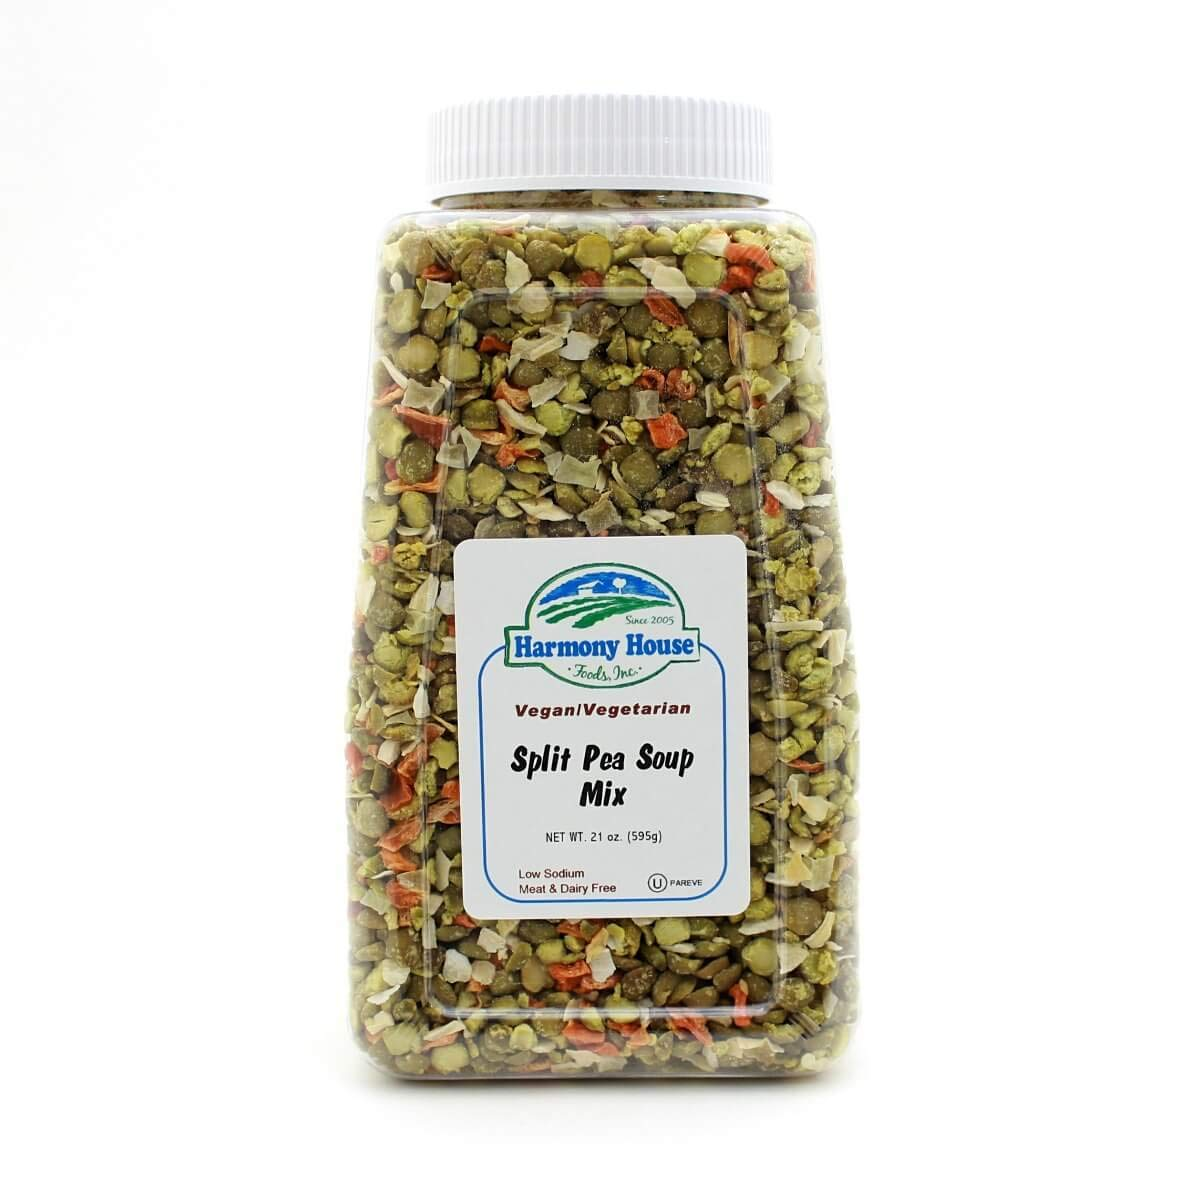 Harmony House Foods Split Pea Soup Mix - Air Dried Vegetables, Vegetarian, Vegan, Non-GMO, Great for Camping, Survival, Hiking, and Backpacking, 21 Ounce Jar